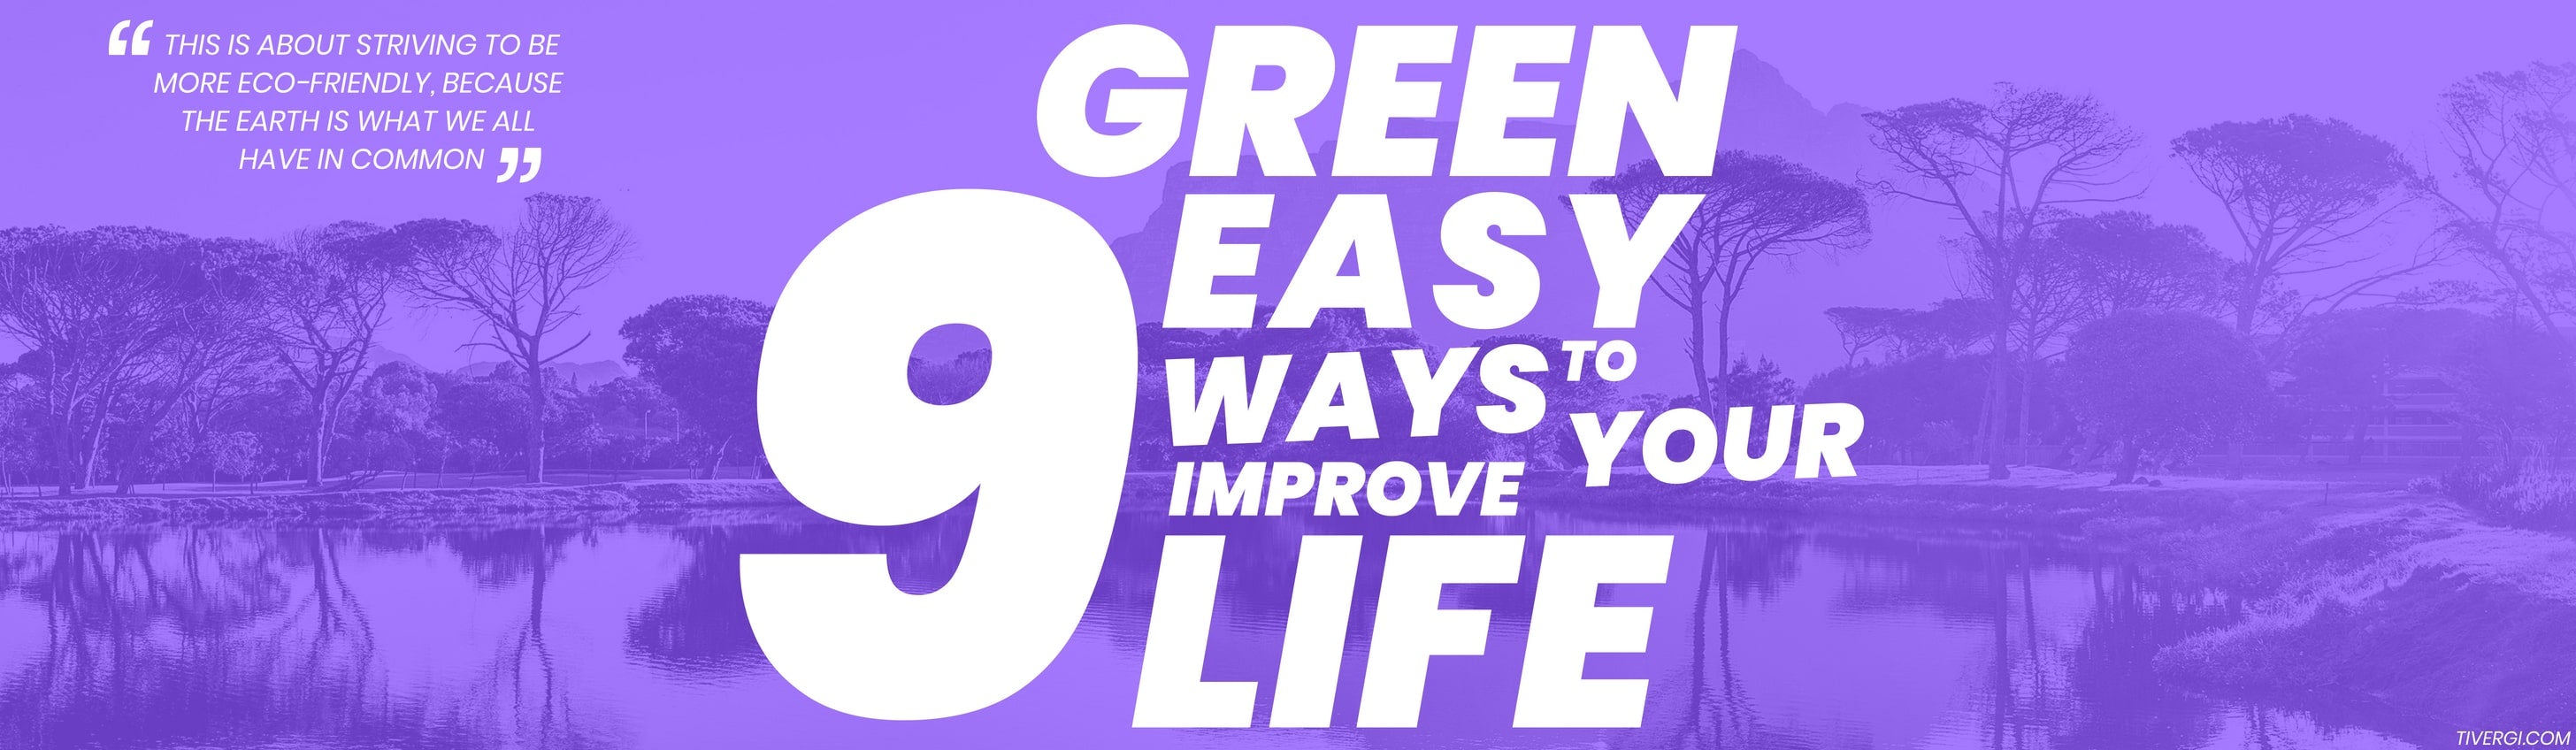 9 Green and Easy Ways to Improve Your Life